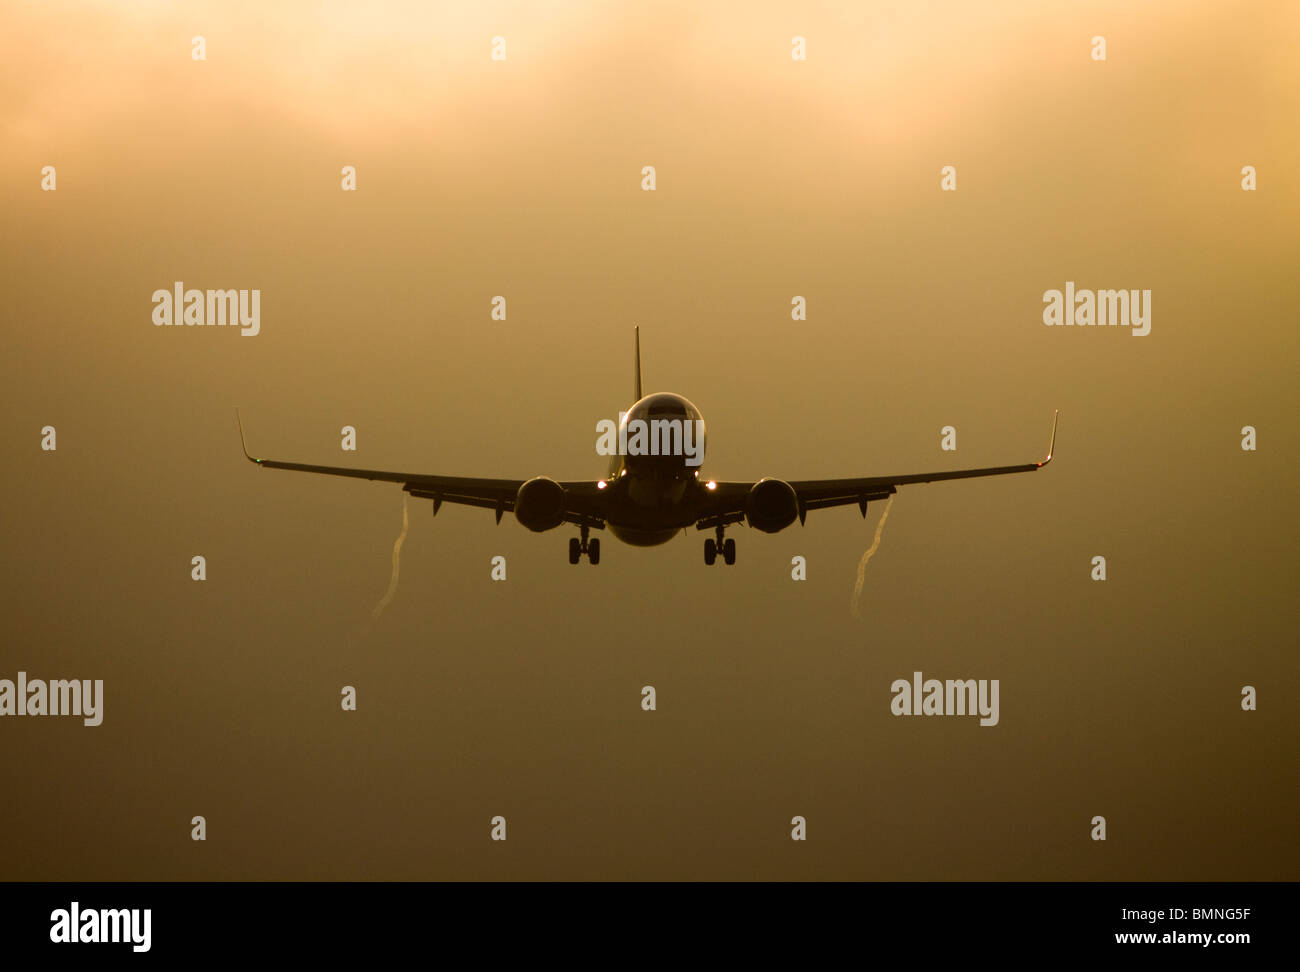 Silhouette of a Boeing 737-800 aircraft at sunset - Stock Image